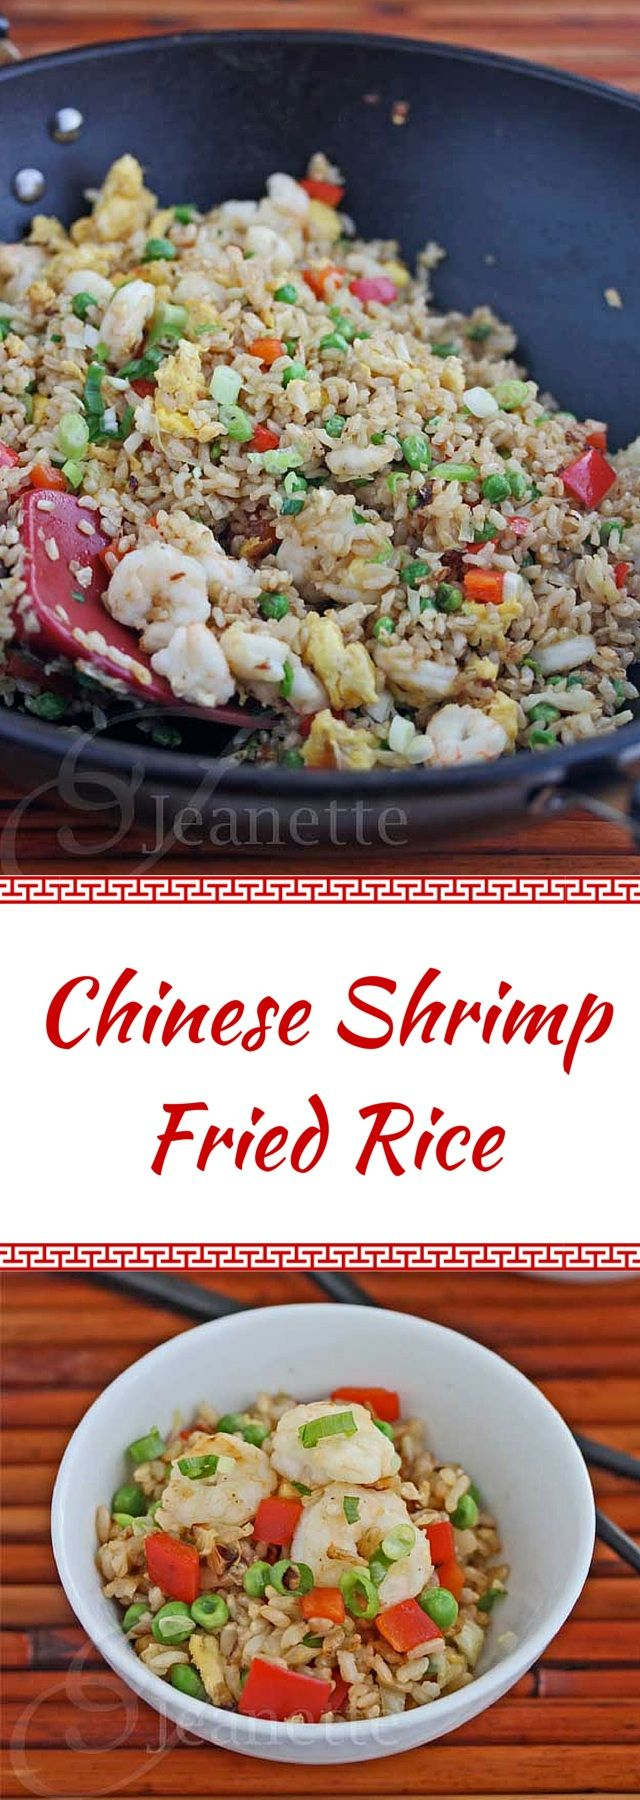 Chinese Shrimp Fried Rice - this is so much better than take-out - you've got to try it! ~ http://jeanetteshealthyliving.com